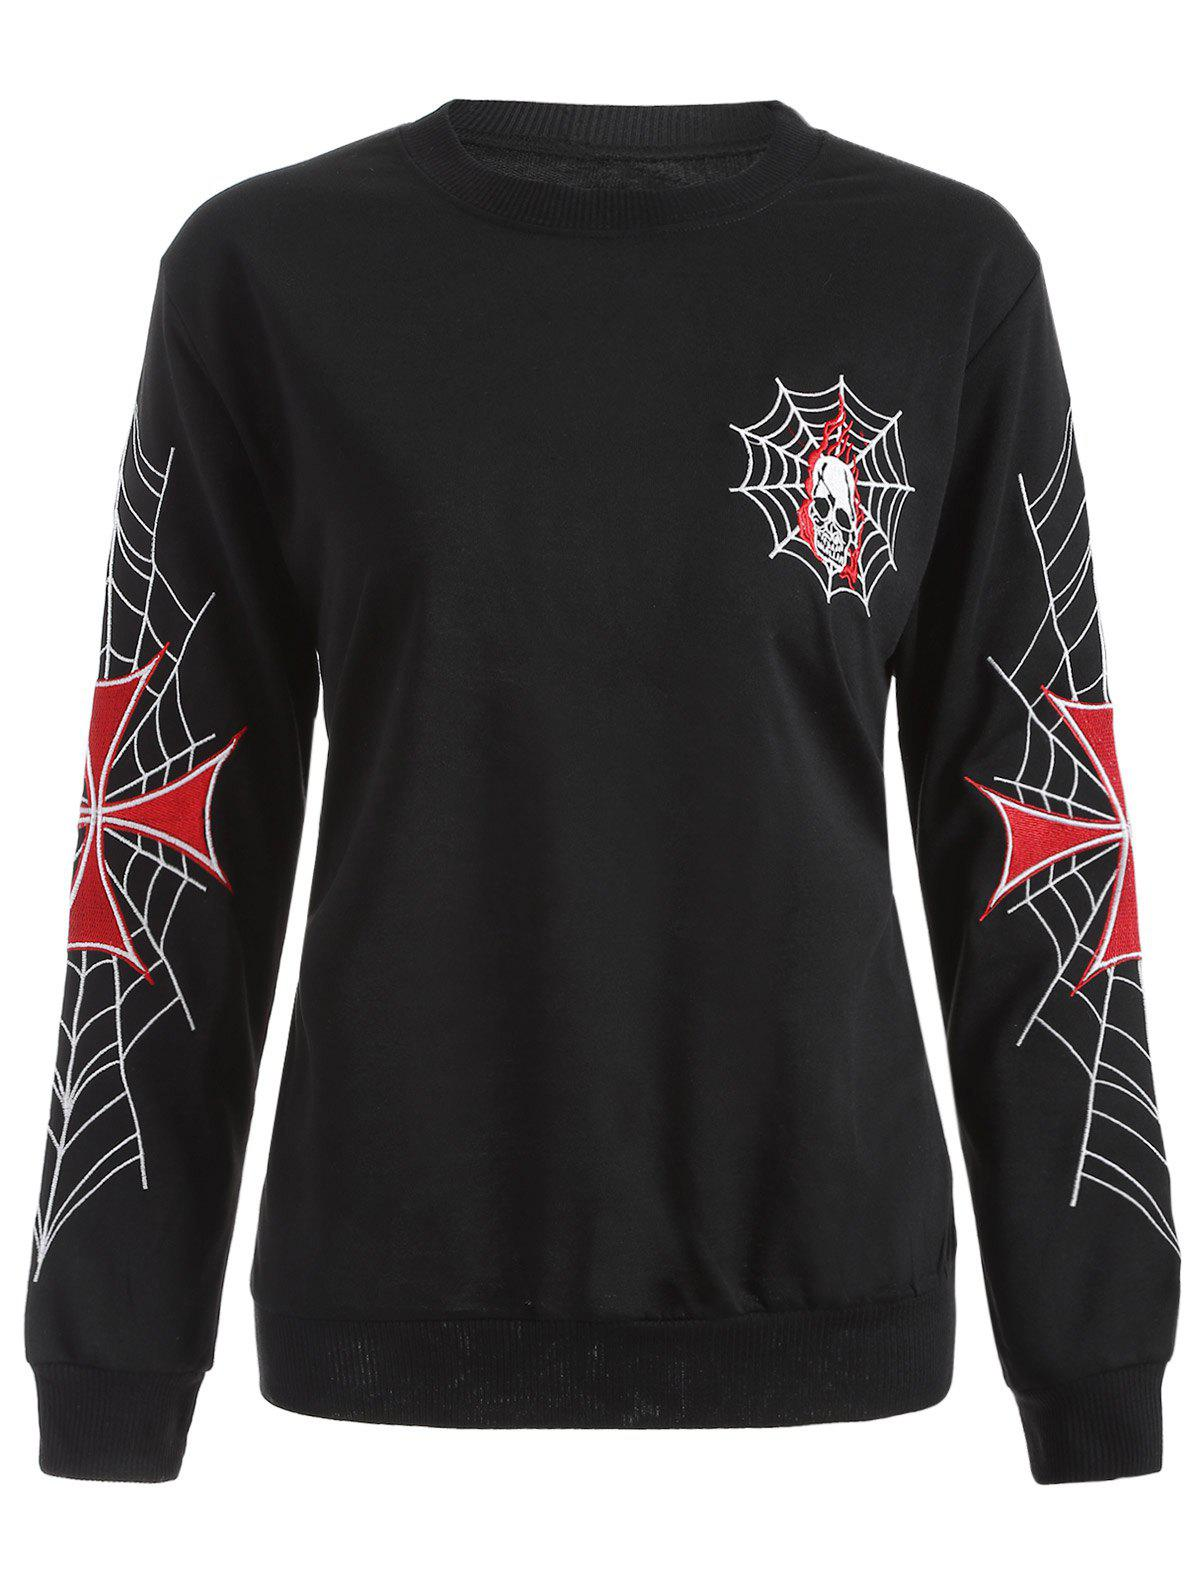 Punk Embroidered Loose Sweatshirt - BLACK XL